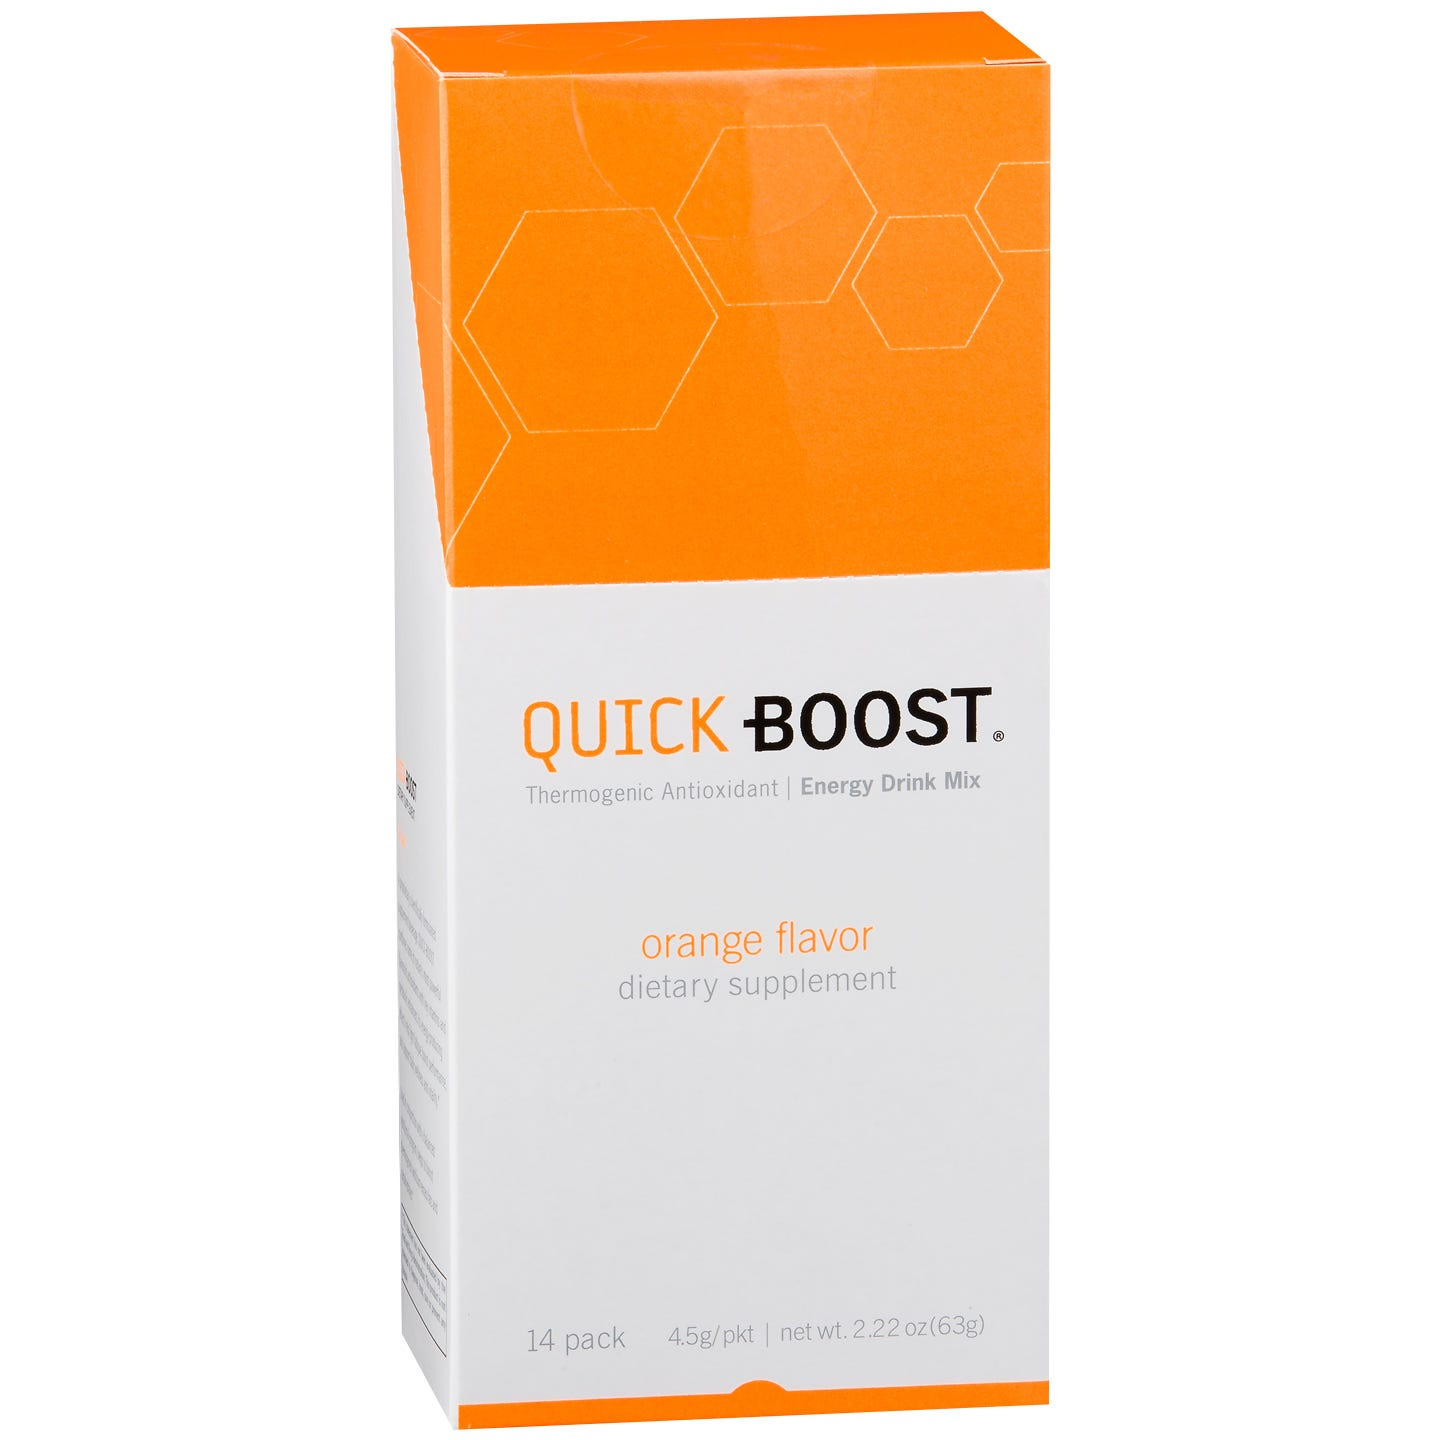 QUICK-BOOST - Orange